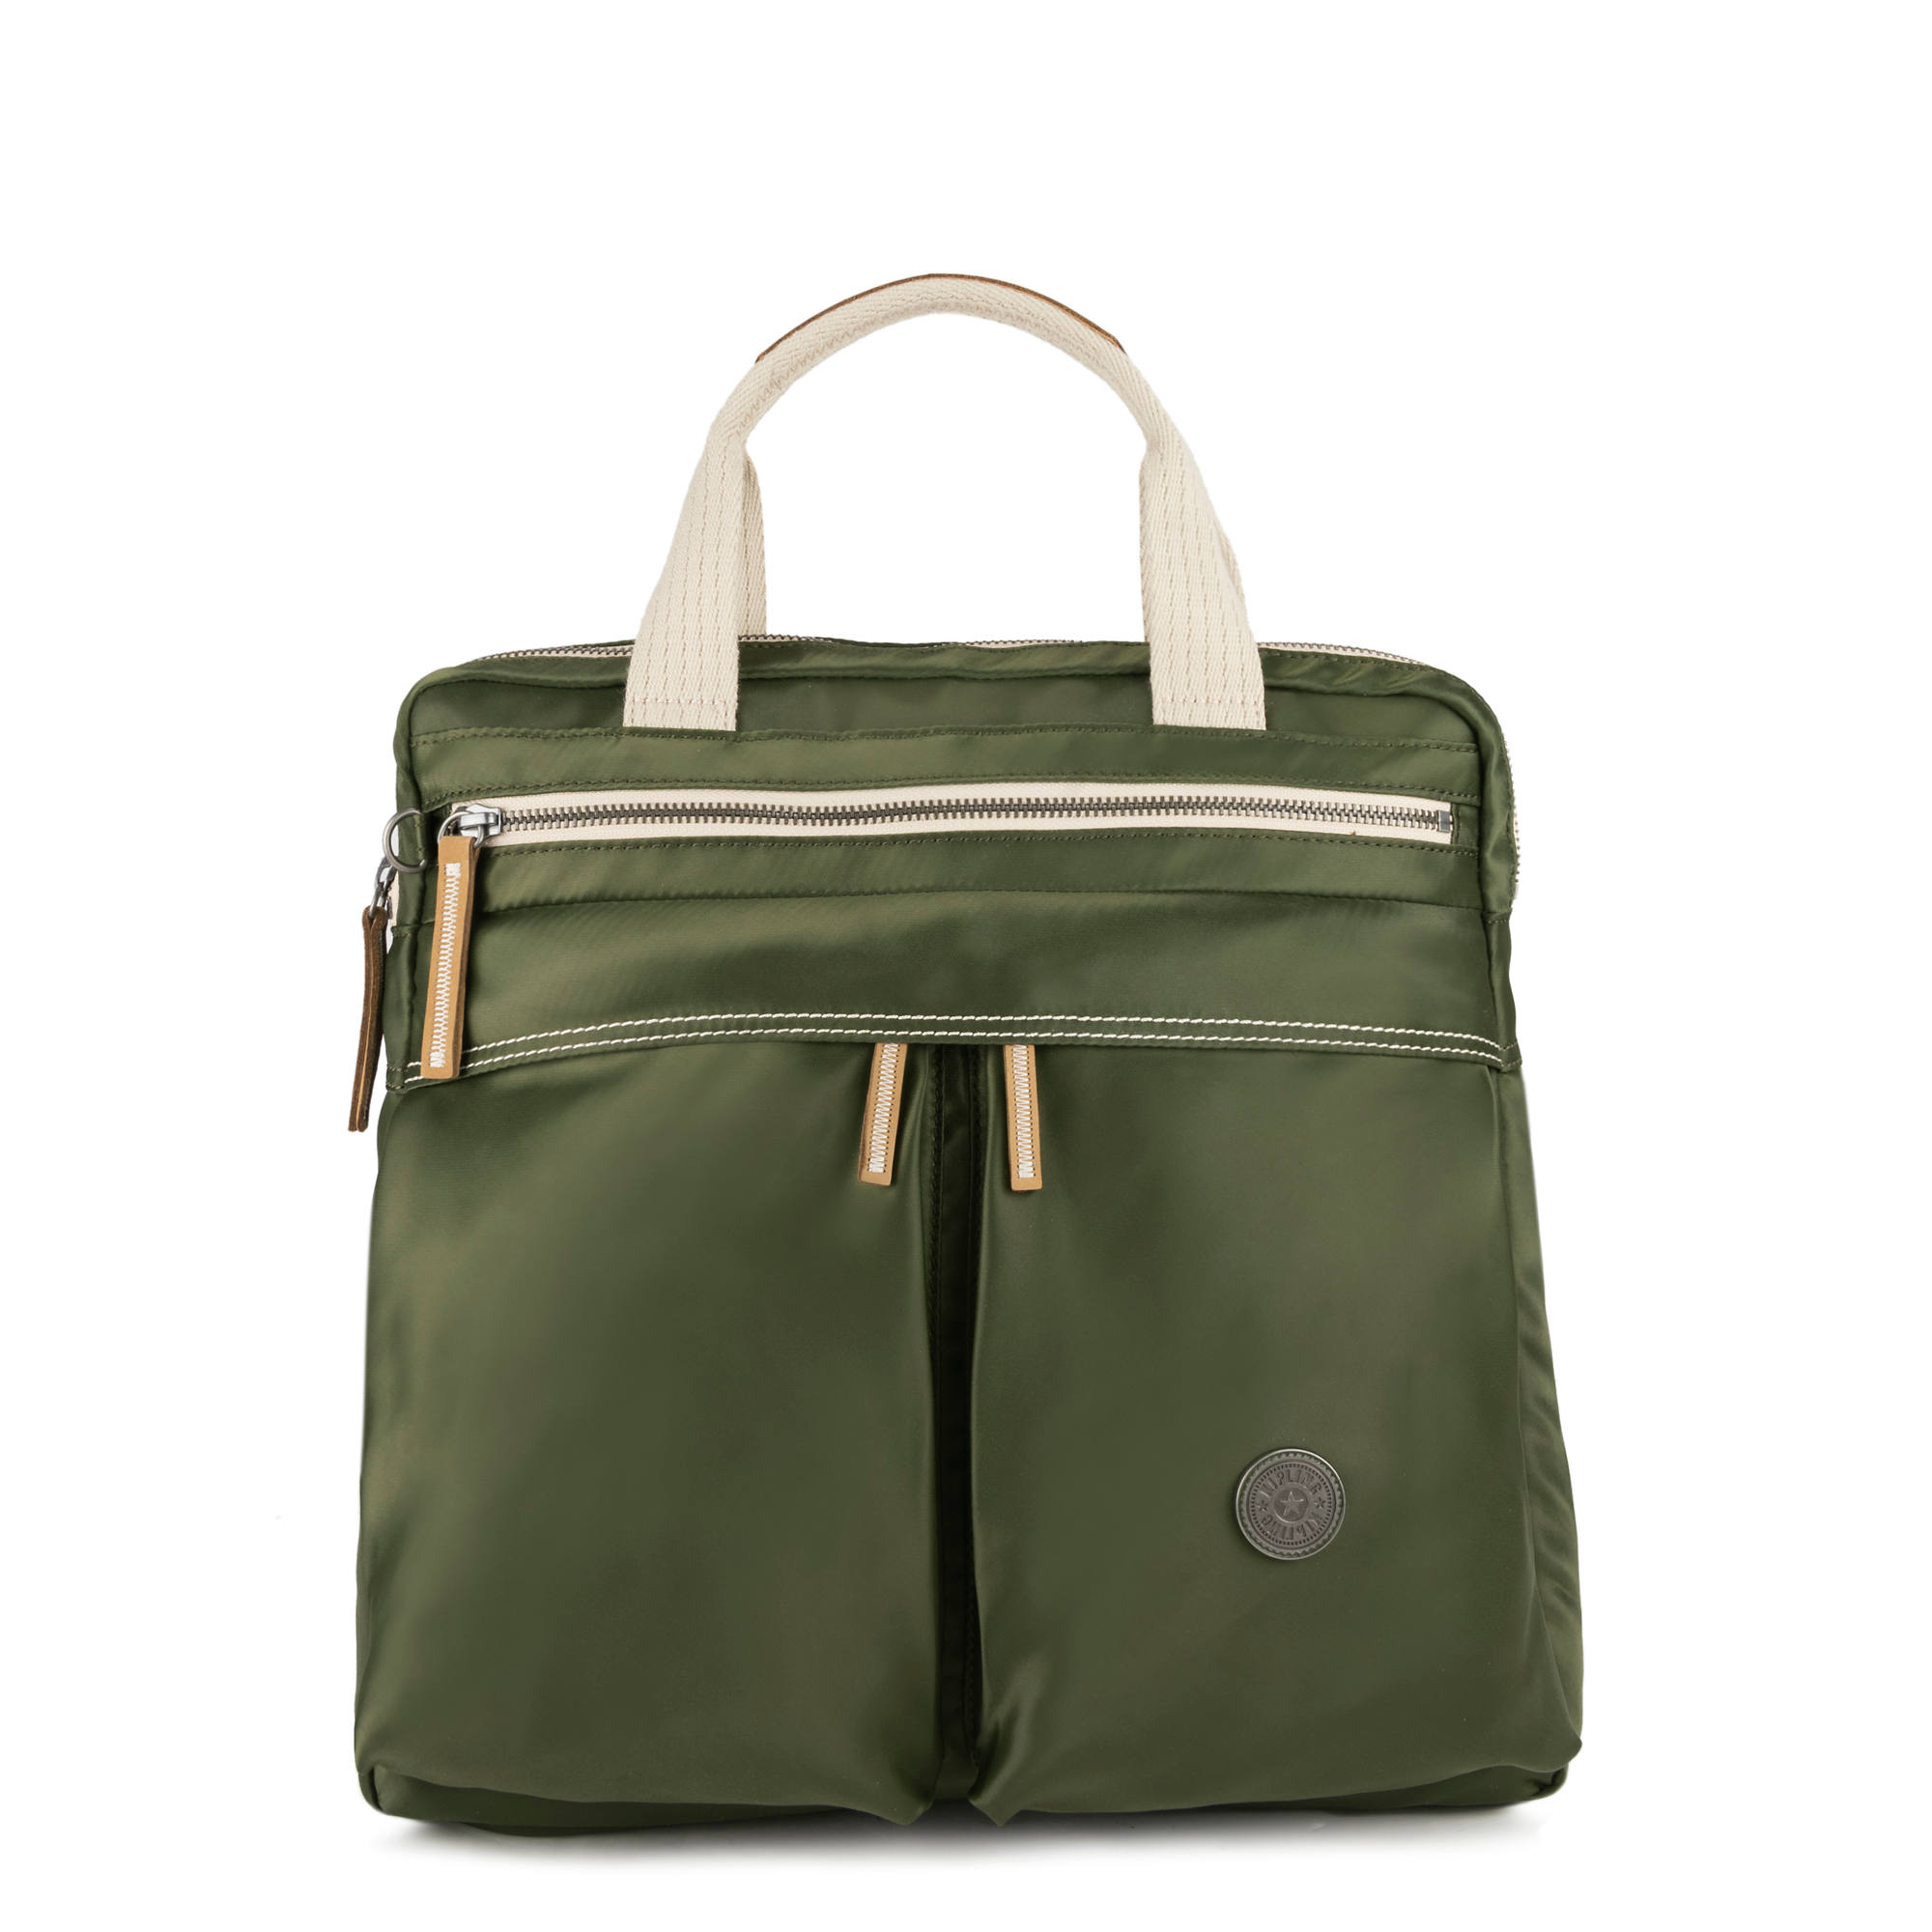 Komori Small Tote-Backpack,Elevated Green,large-zoomed